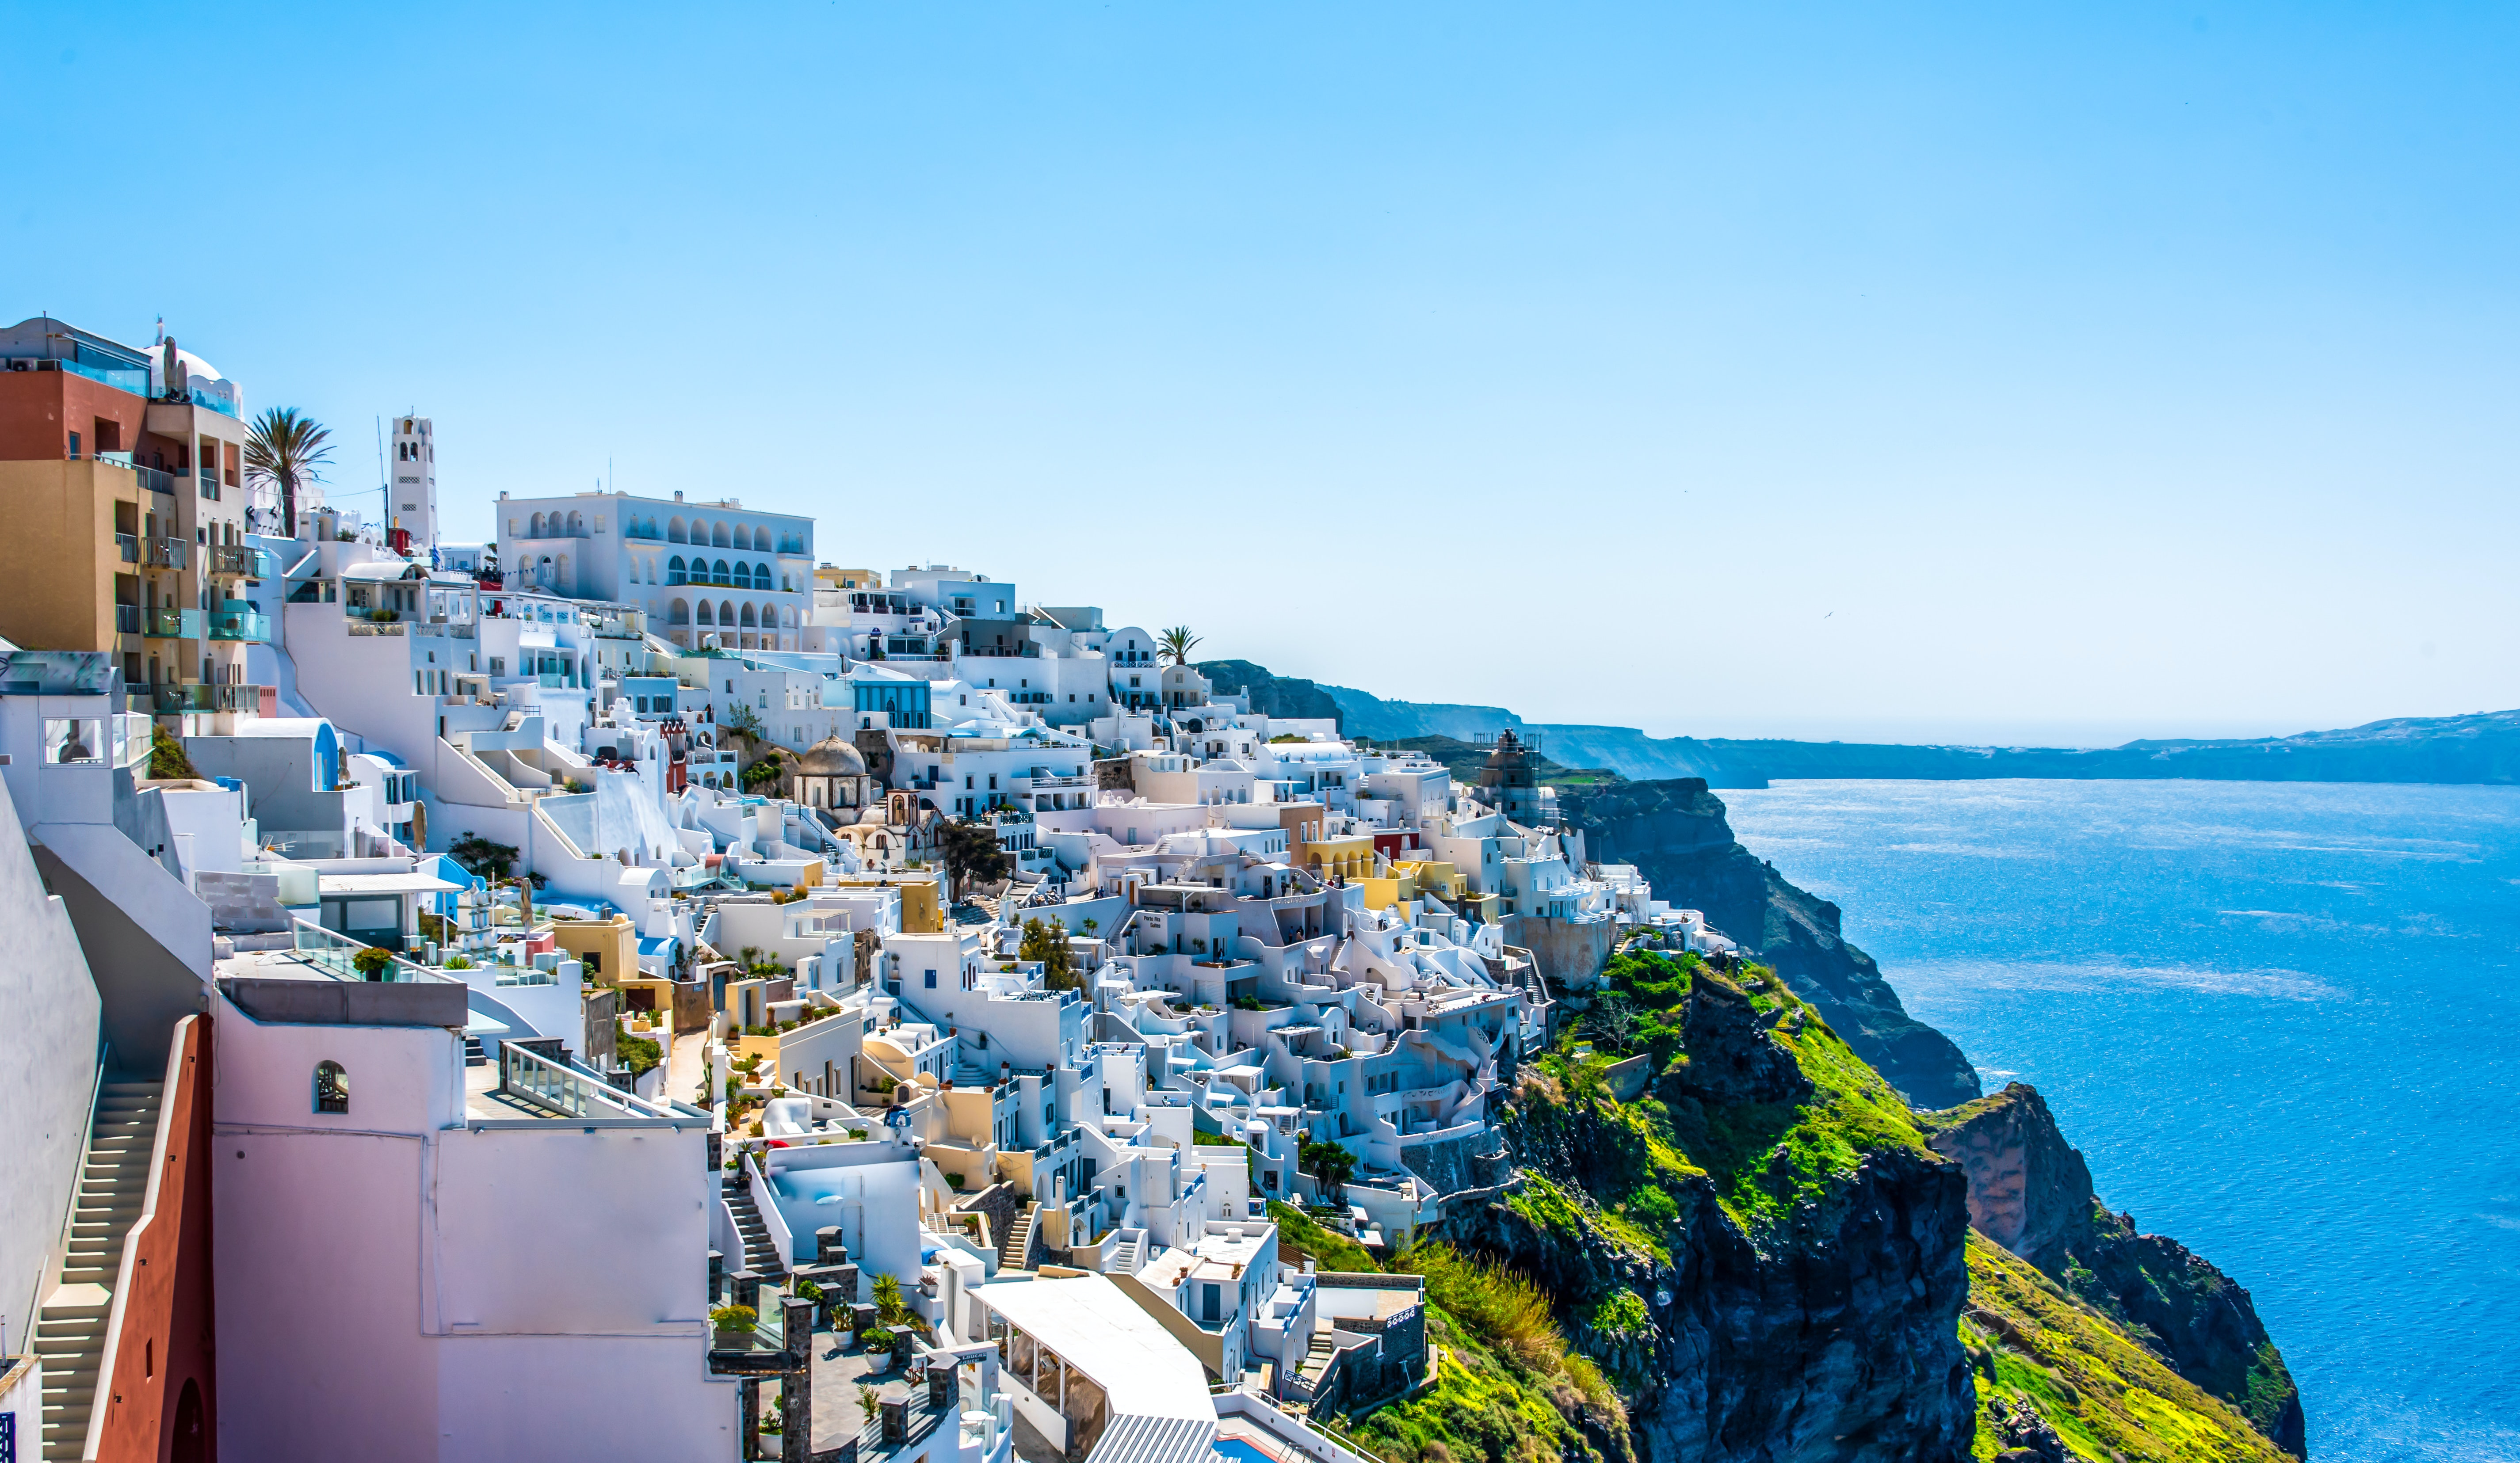 Travelling to Greece The Essentials You Must Have with You